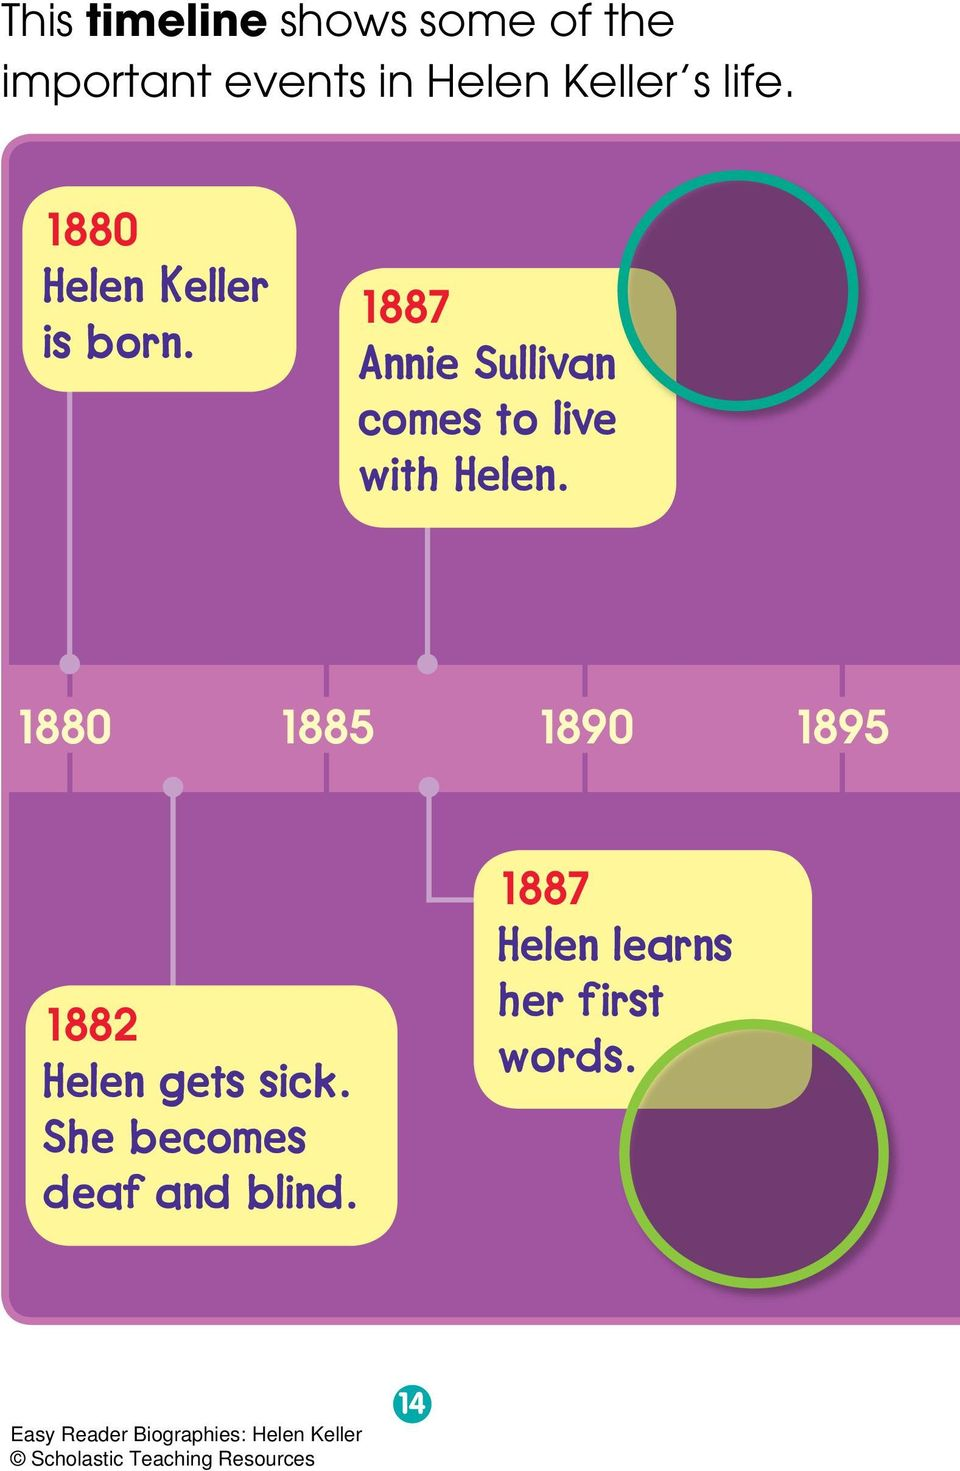 1887 Annie Sullivan comes to live with Helen.